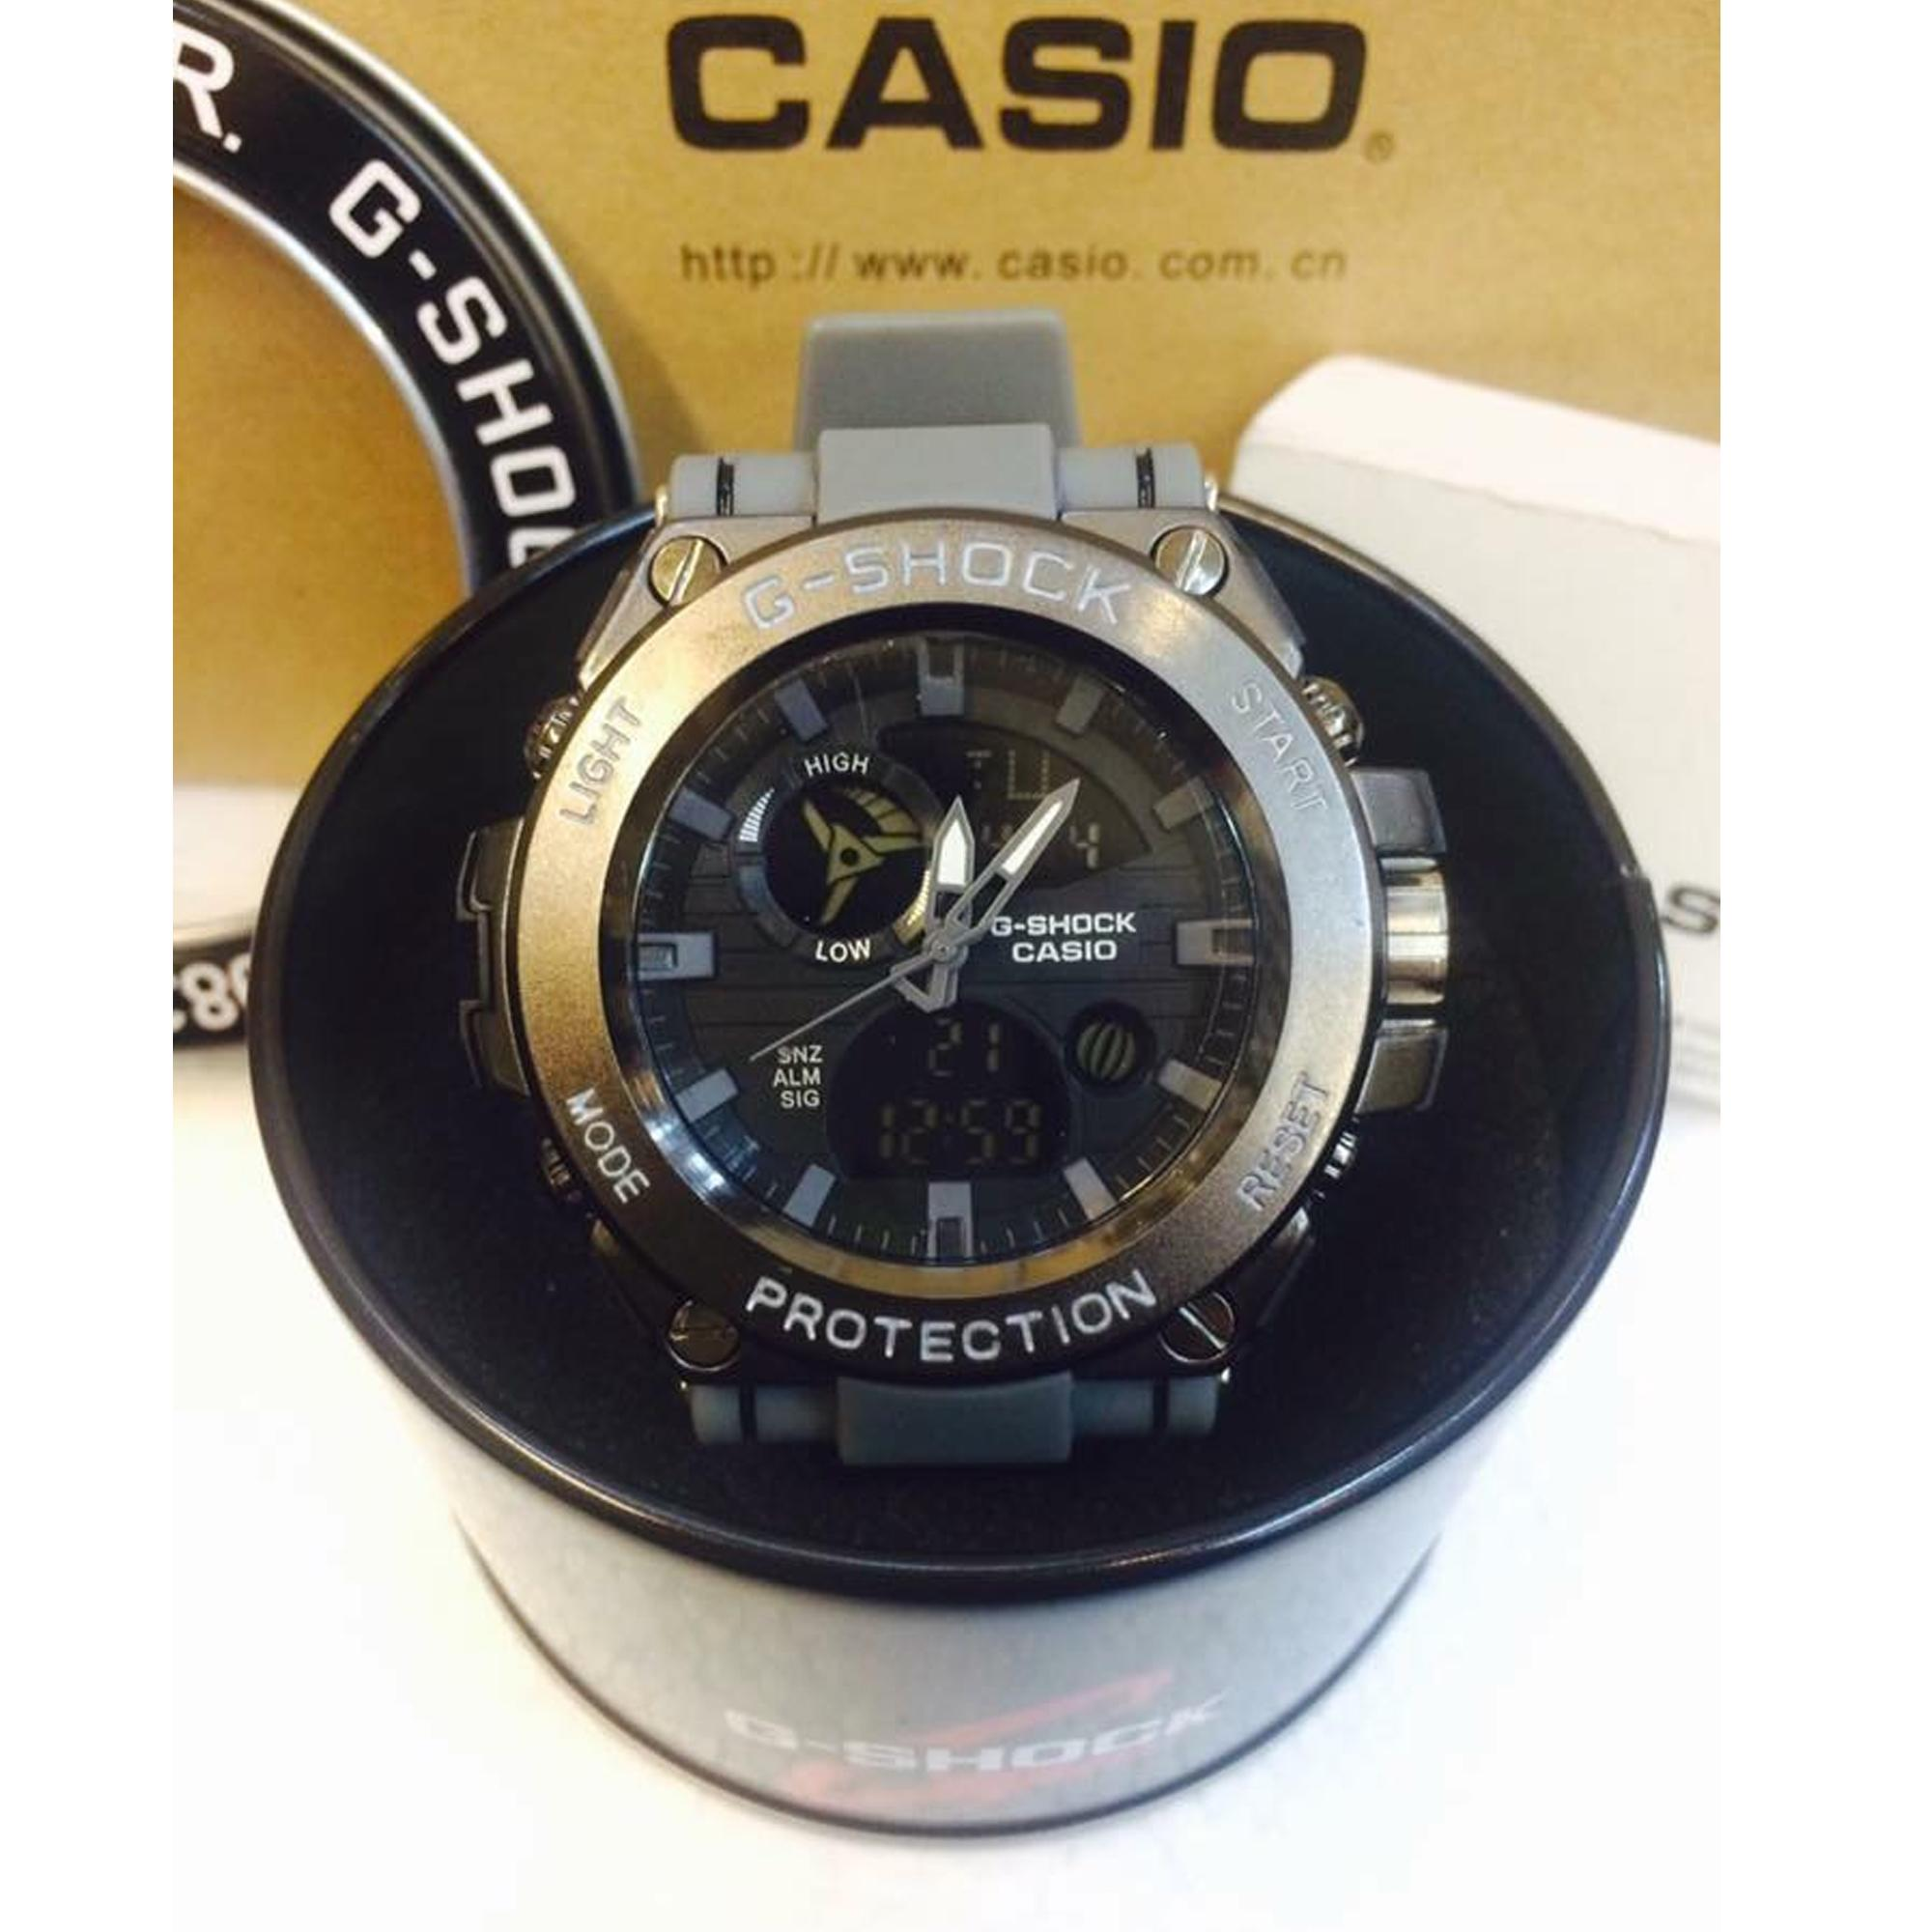 Watches For Sale Wristwatches Online Brands Prices Reviews In Jam Tangan Skmei Casio 1123 Original Digital Caslo G Shock Watch With Can High Quality